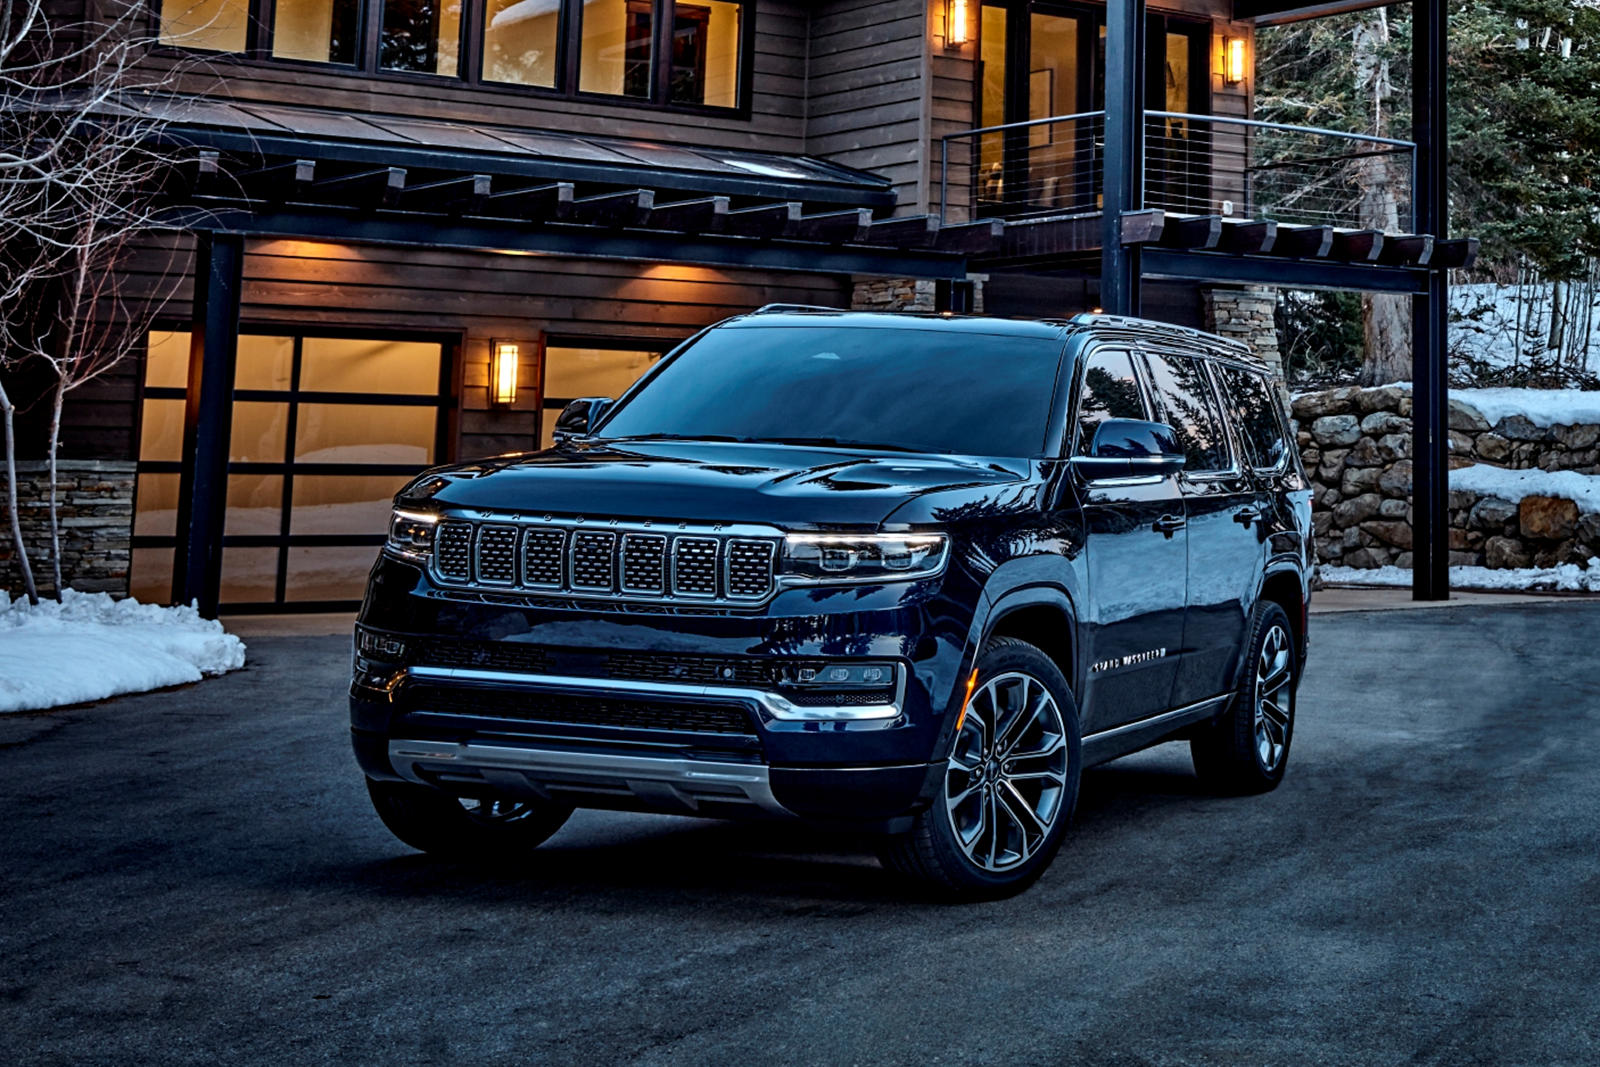 2022-jeep-grand-wagoneer-first-look-review:-the-mother-of-all-suvs